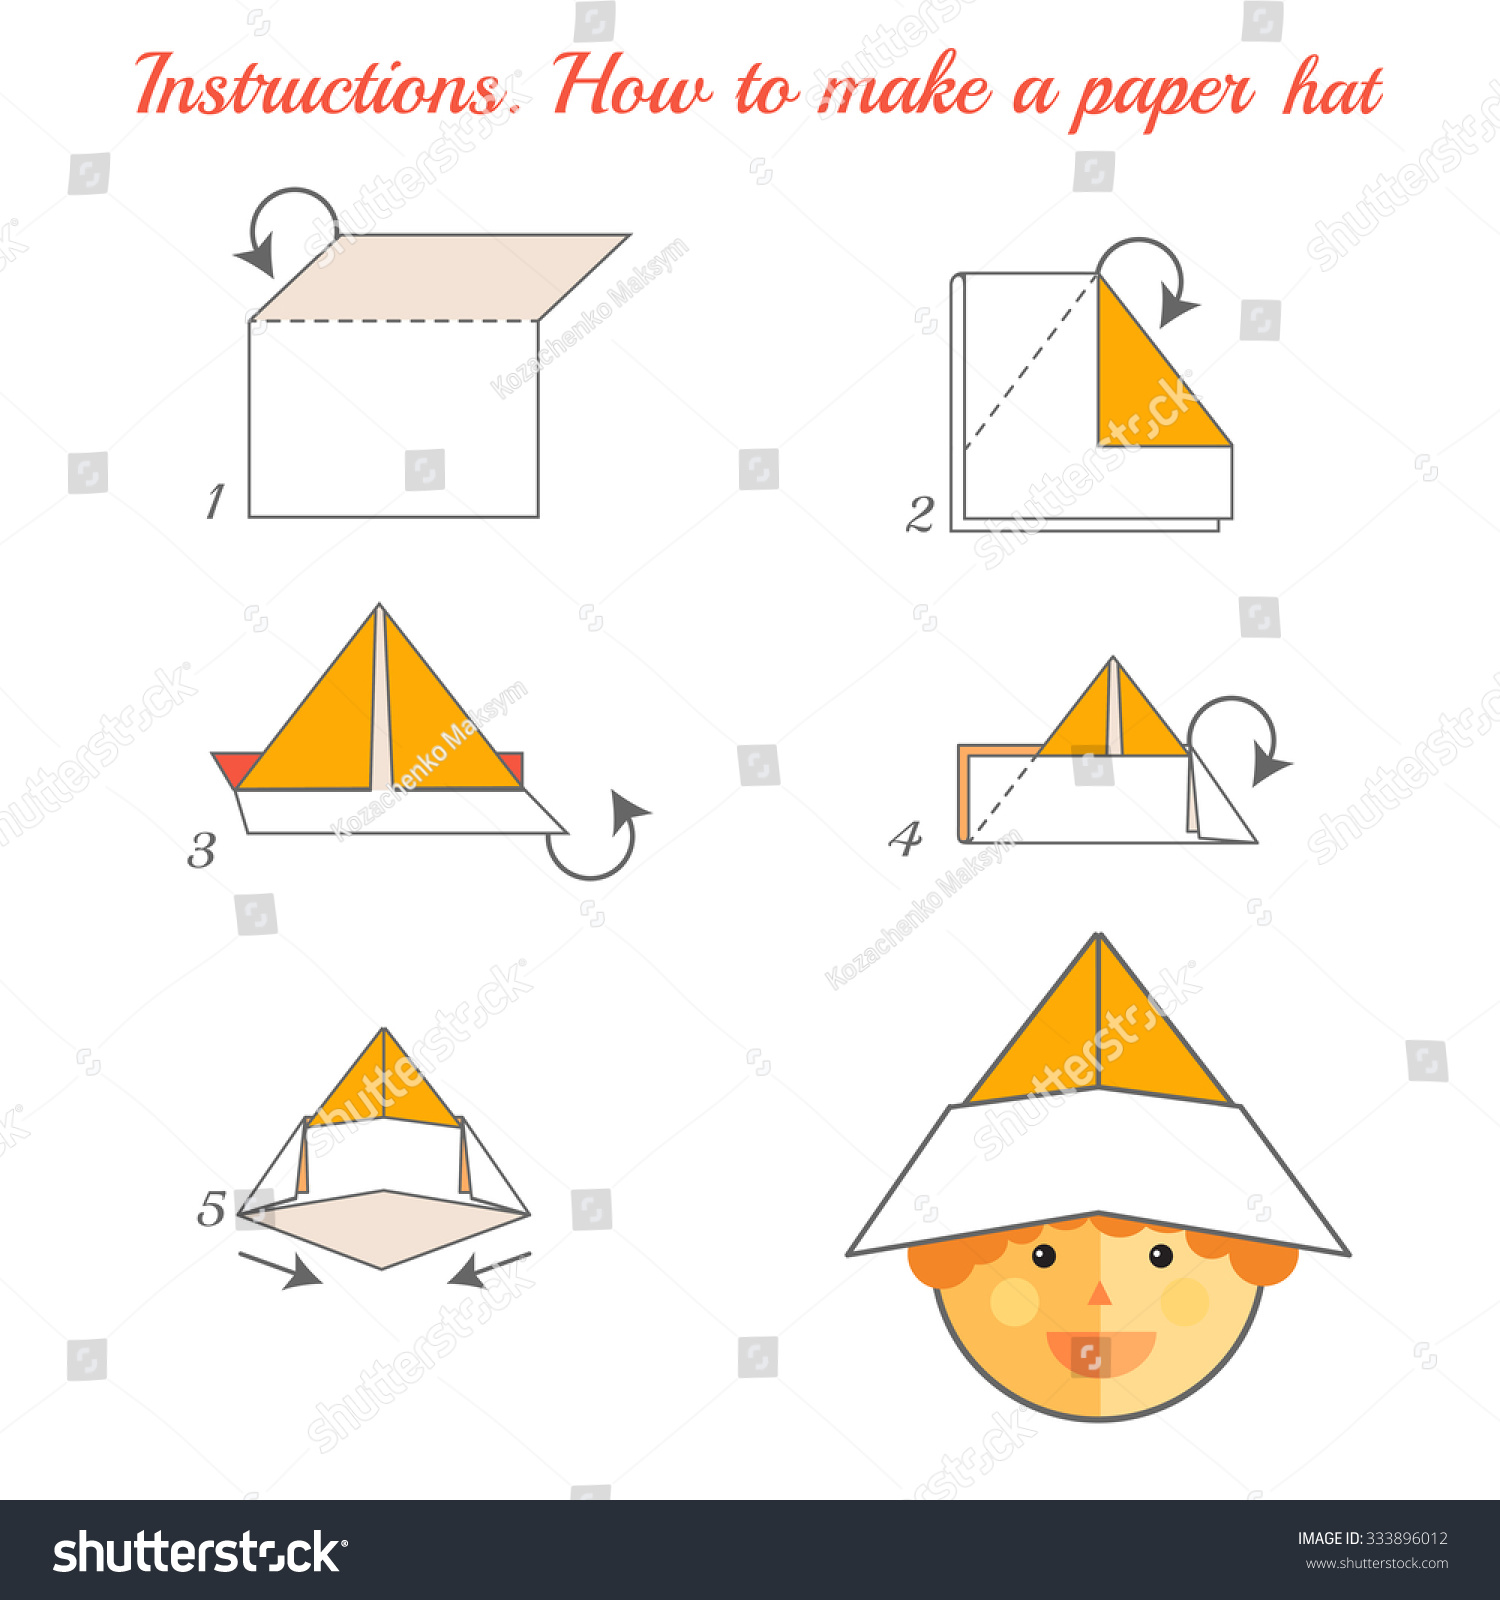 Instructions To Make A Paper Pirate Hat